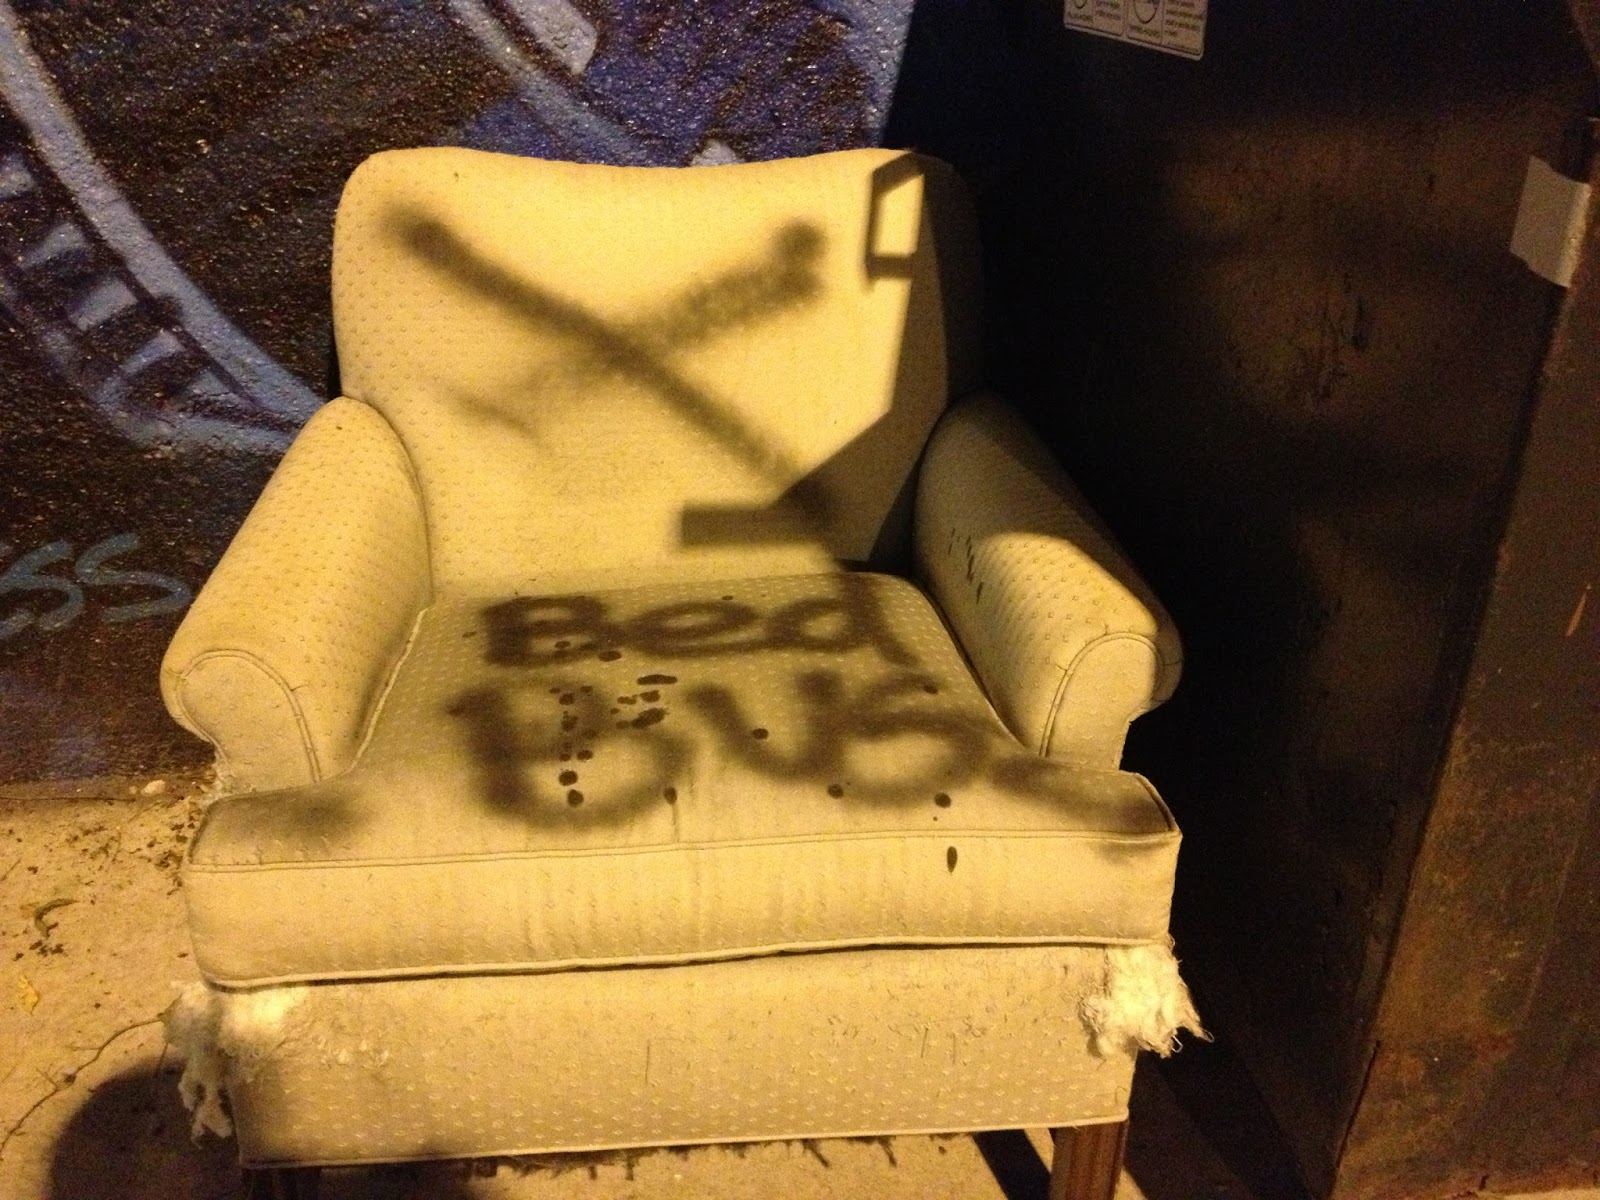 Chevanston Rogers Park Contagion Bedbug Infested Furniture